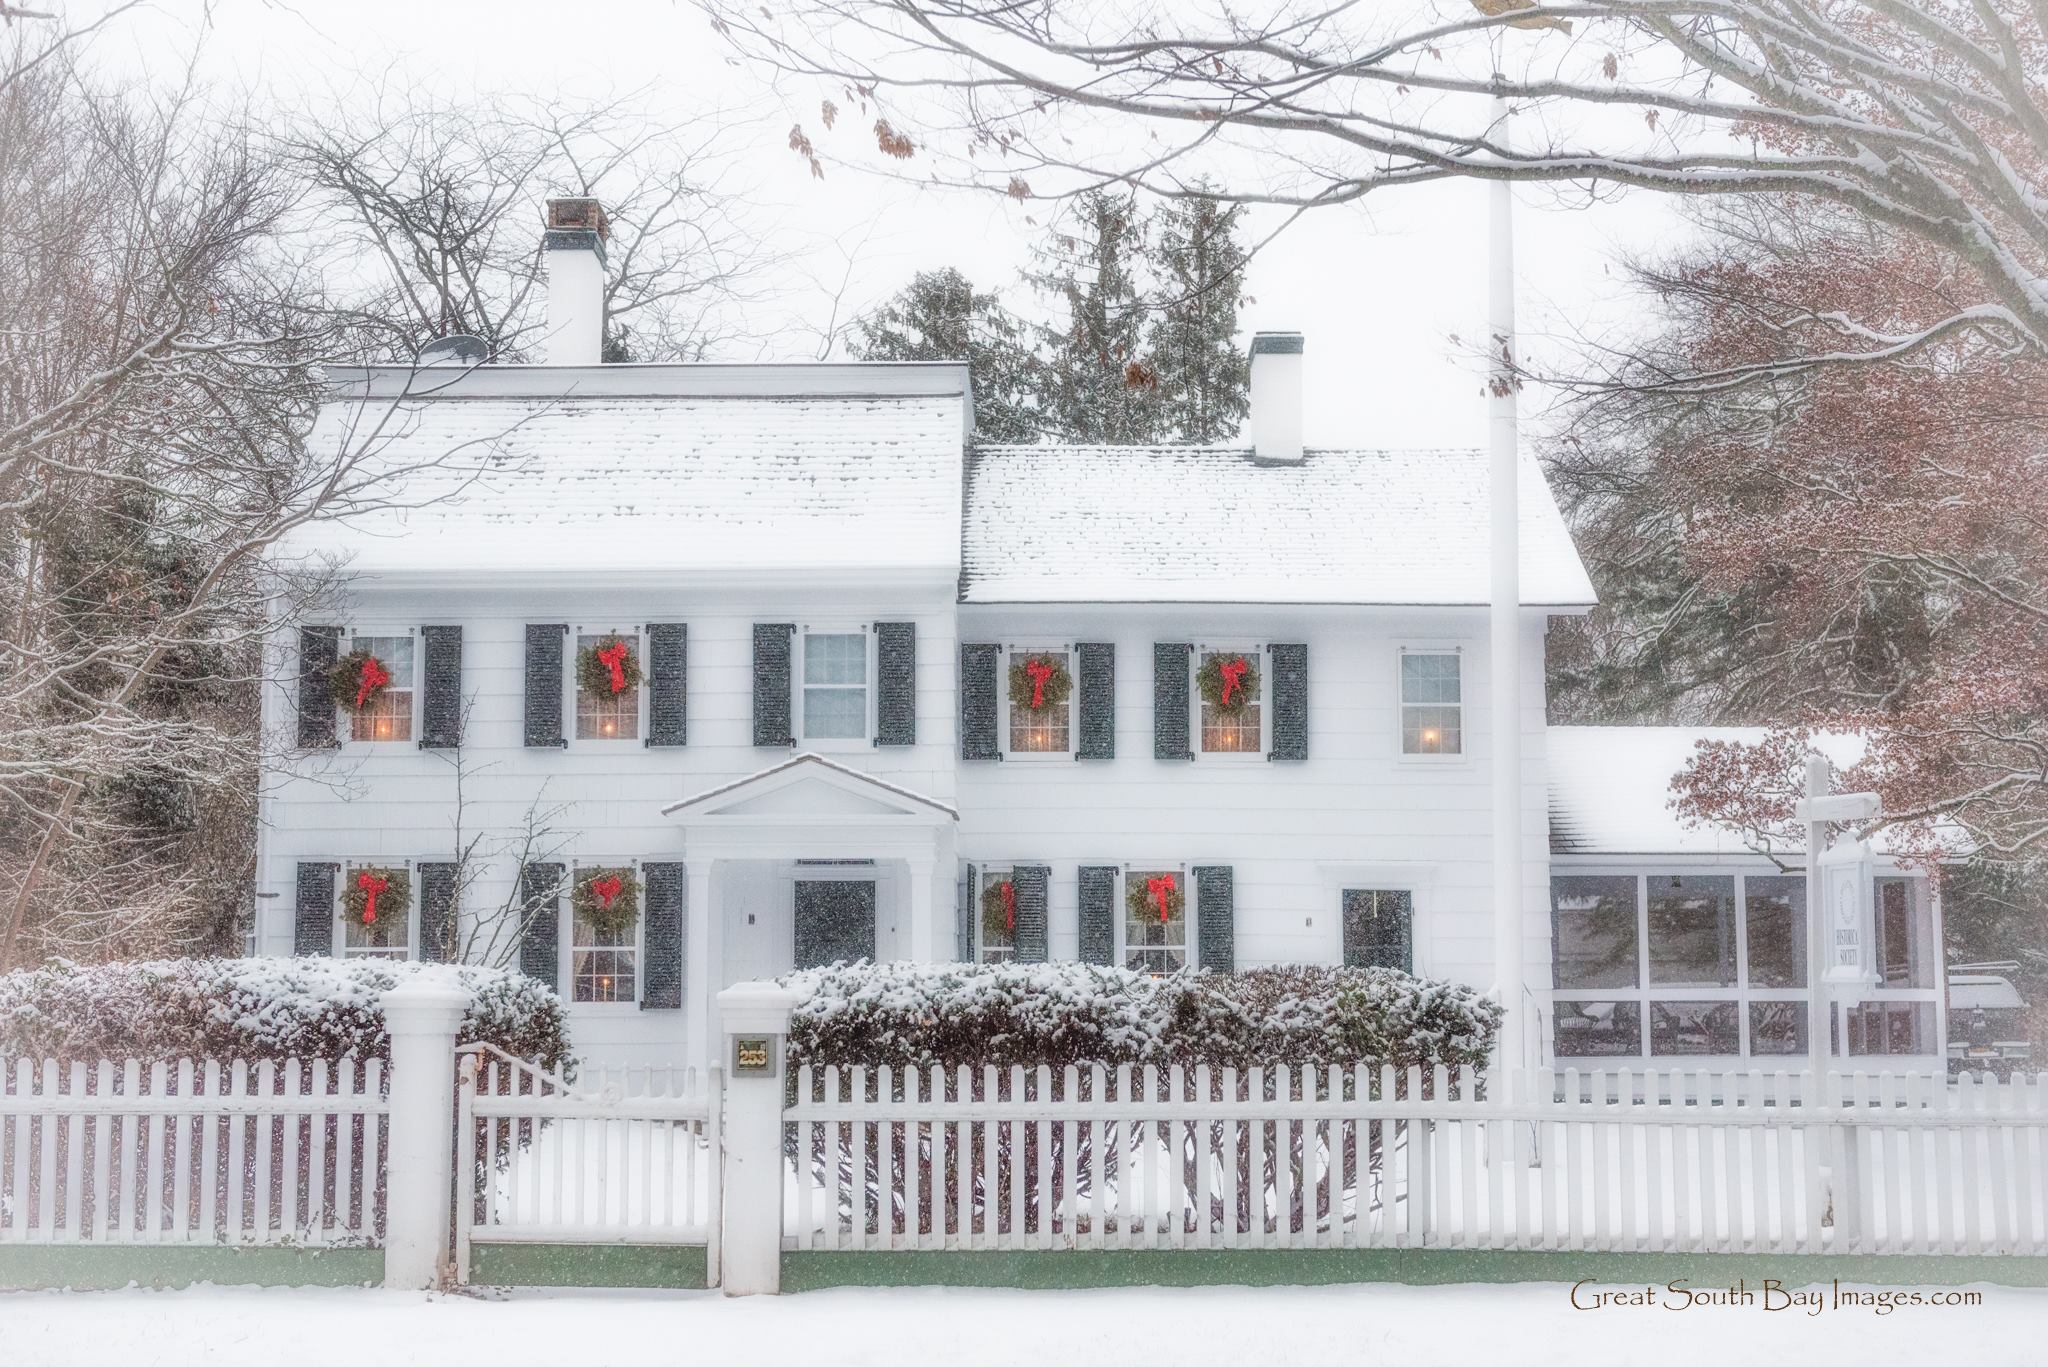 Village of Bellport - Historic District Preservation Work Session - Wednesday, January 6, 2021 at 7:00 pm